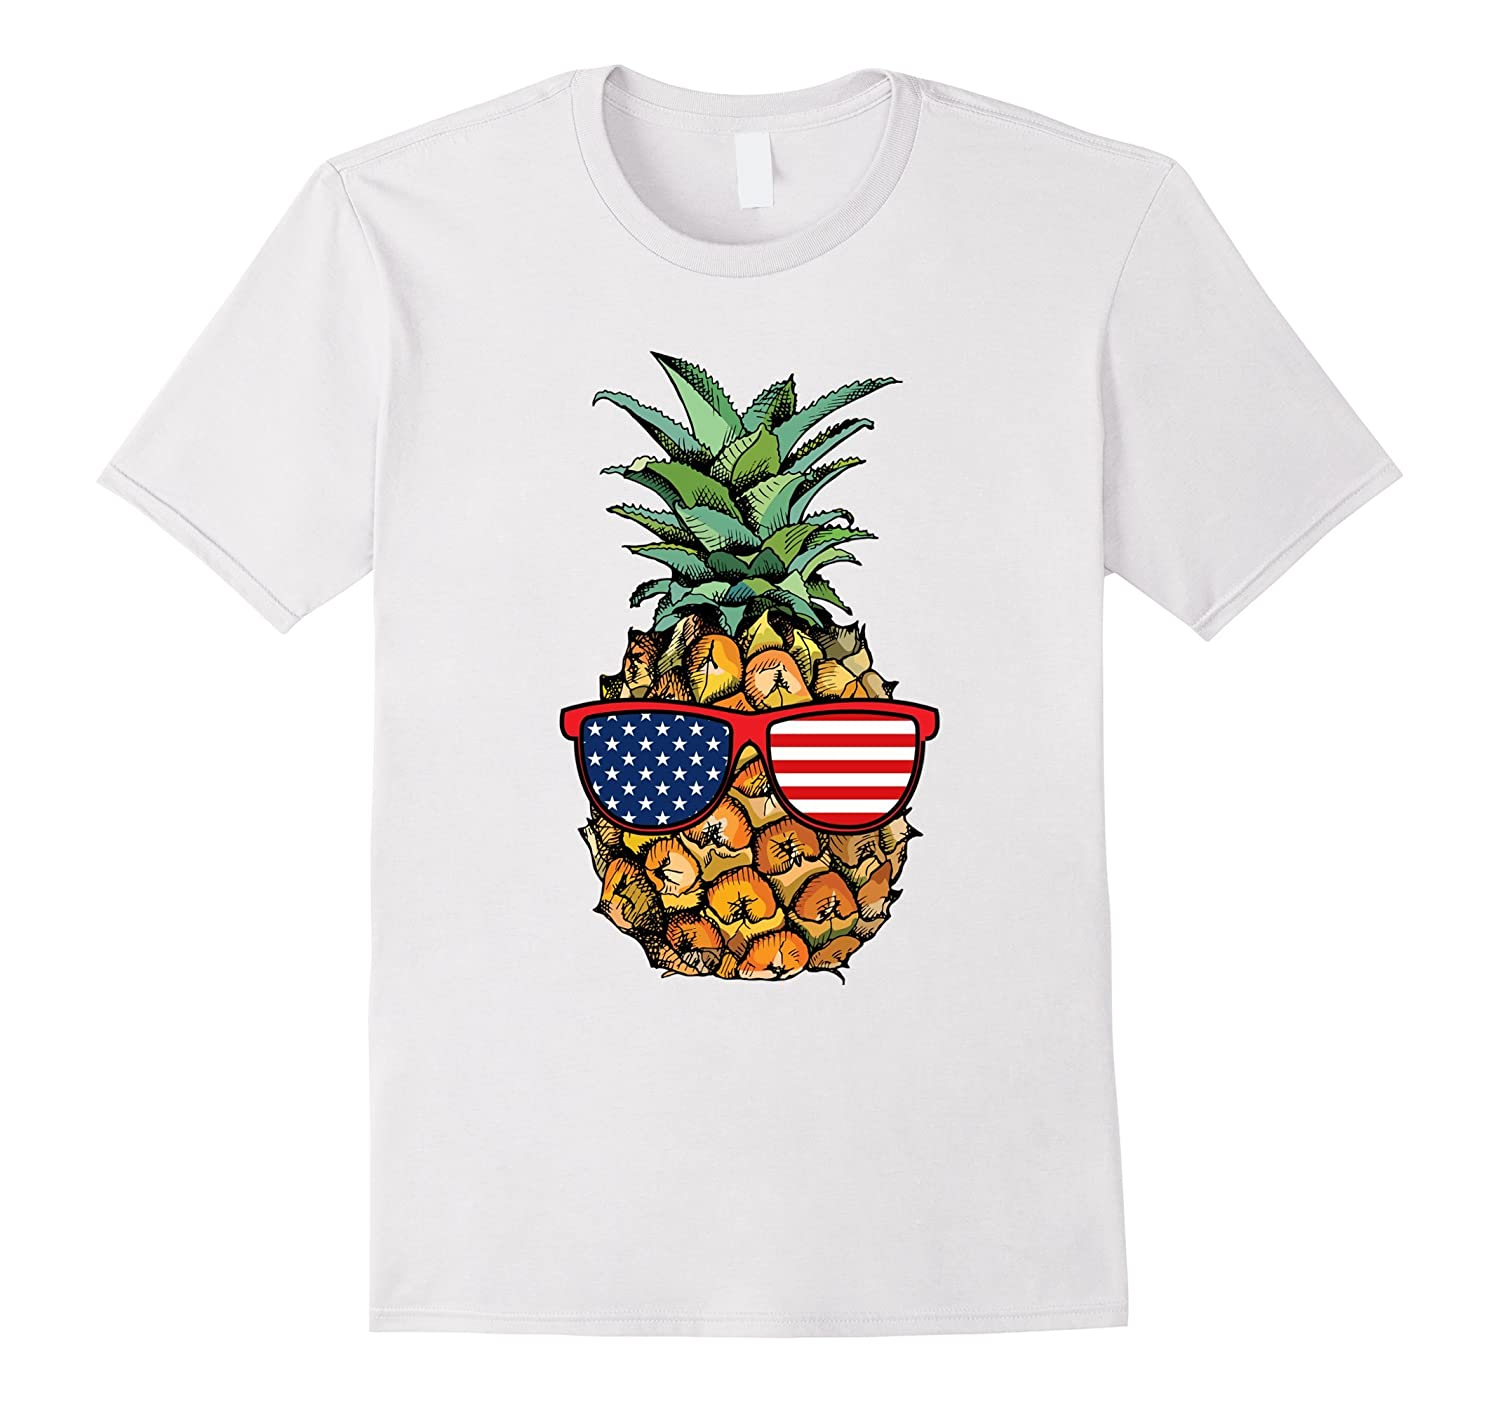 Funny Pineapple Glasses T Shirt Fourth Of July 4th Party